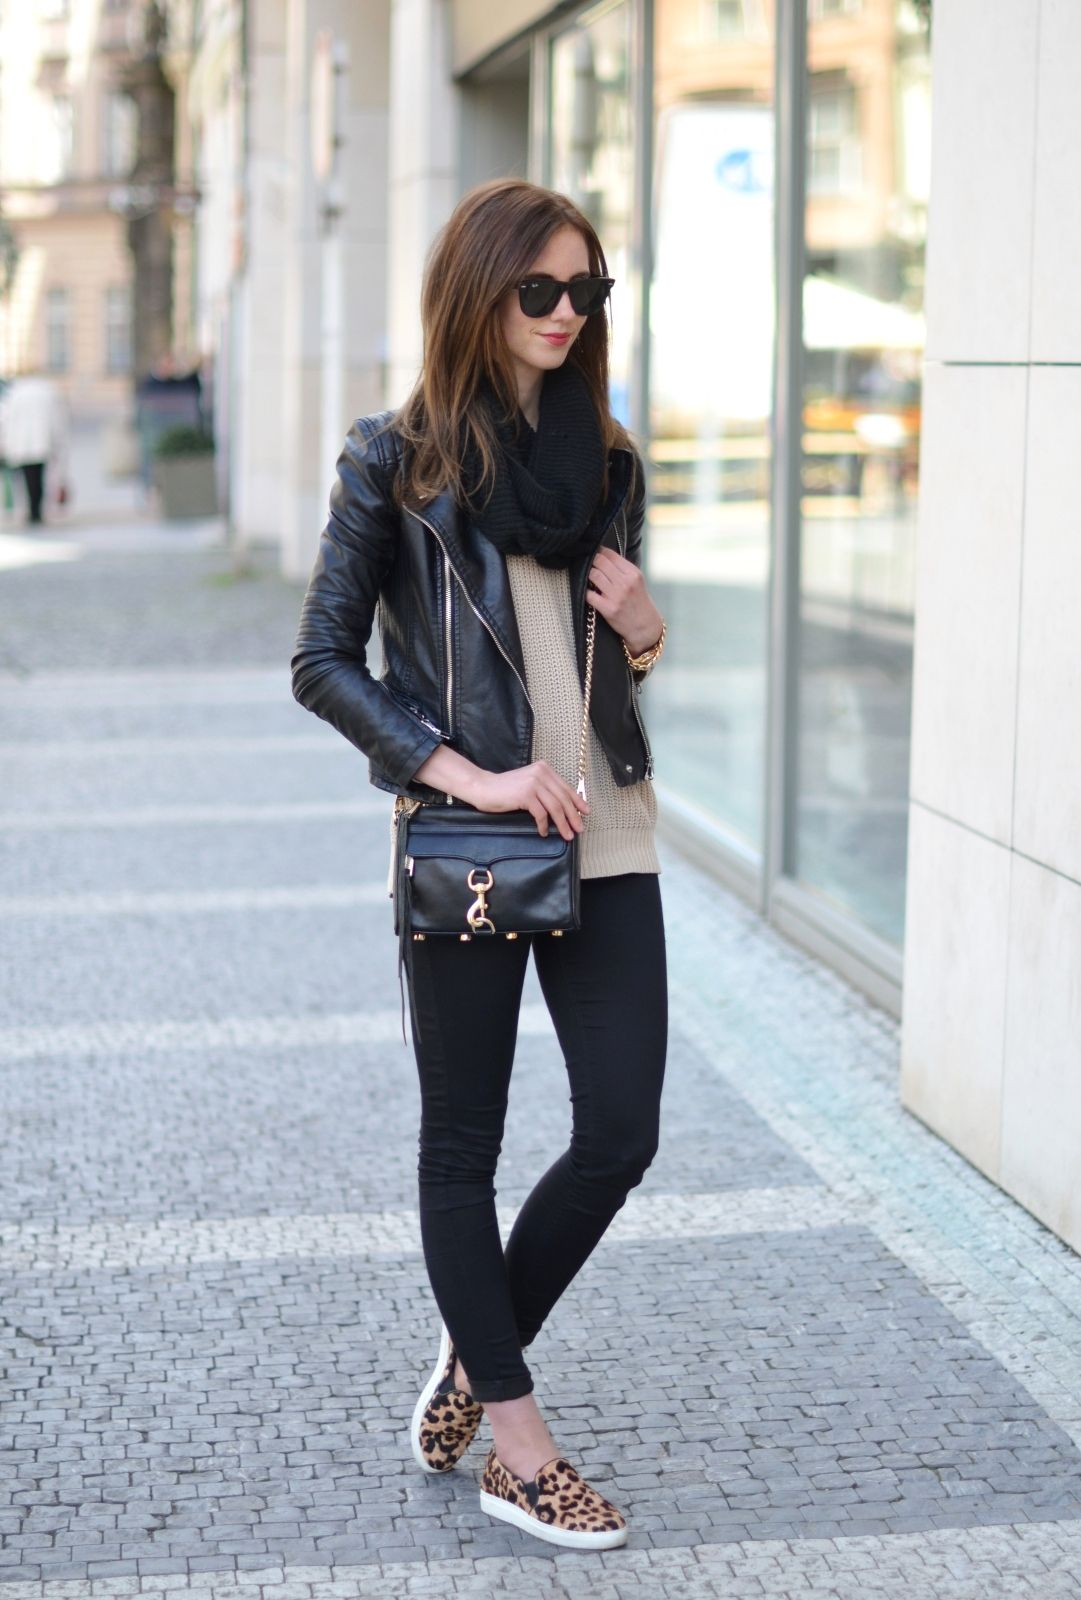 796861e3d02b leopard slip ons + leather jacket | Style {Fall Casual} | Fashion ...